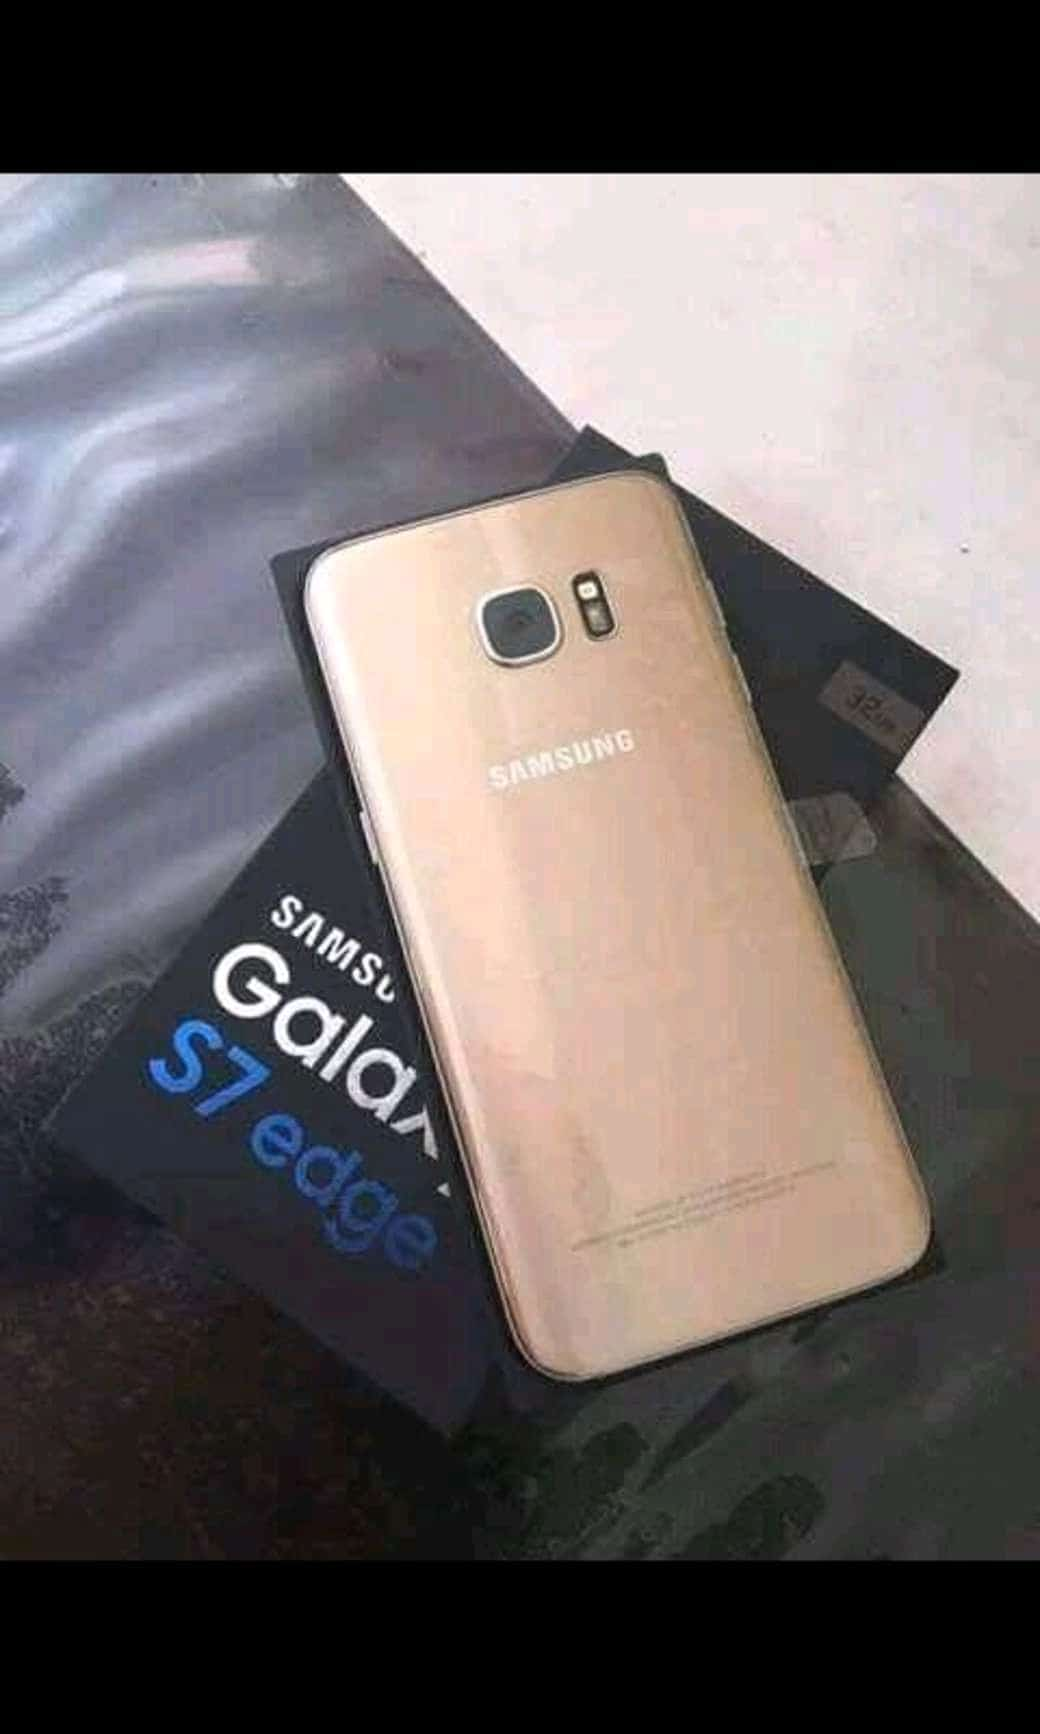 AVAILABLE FOR SALE BRAND NEW UNLOCKED SAMSUNG GALAXY SERIES